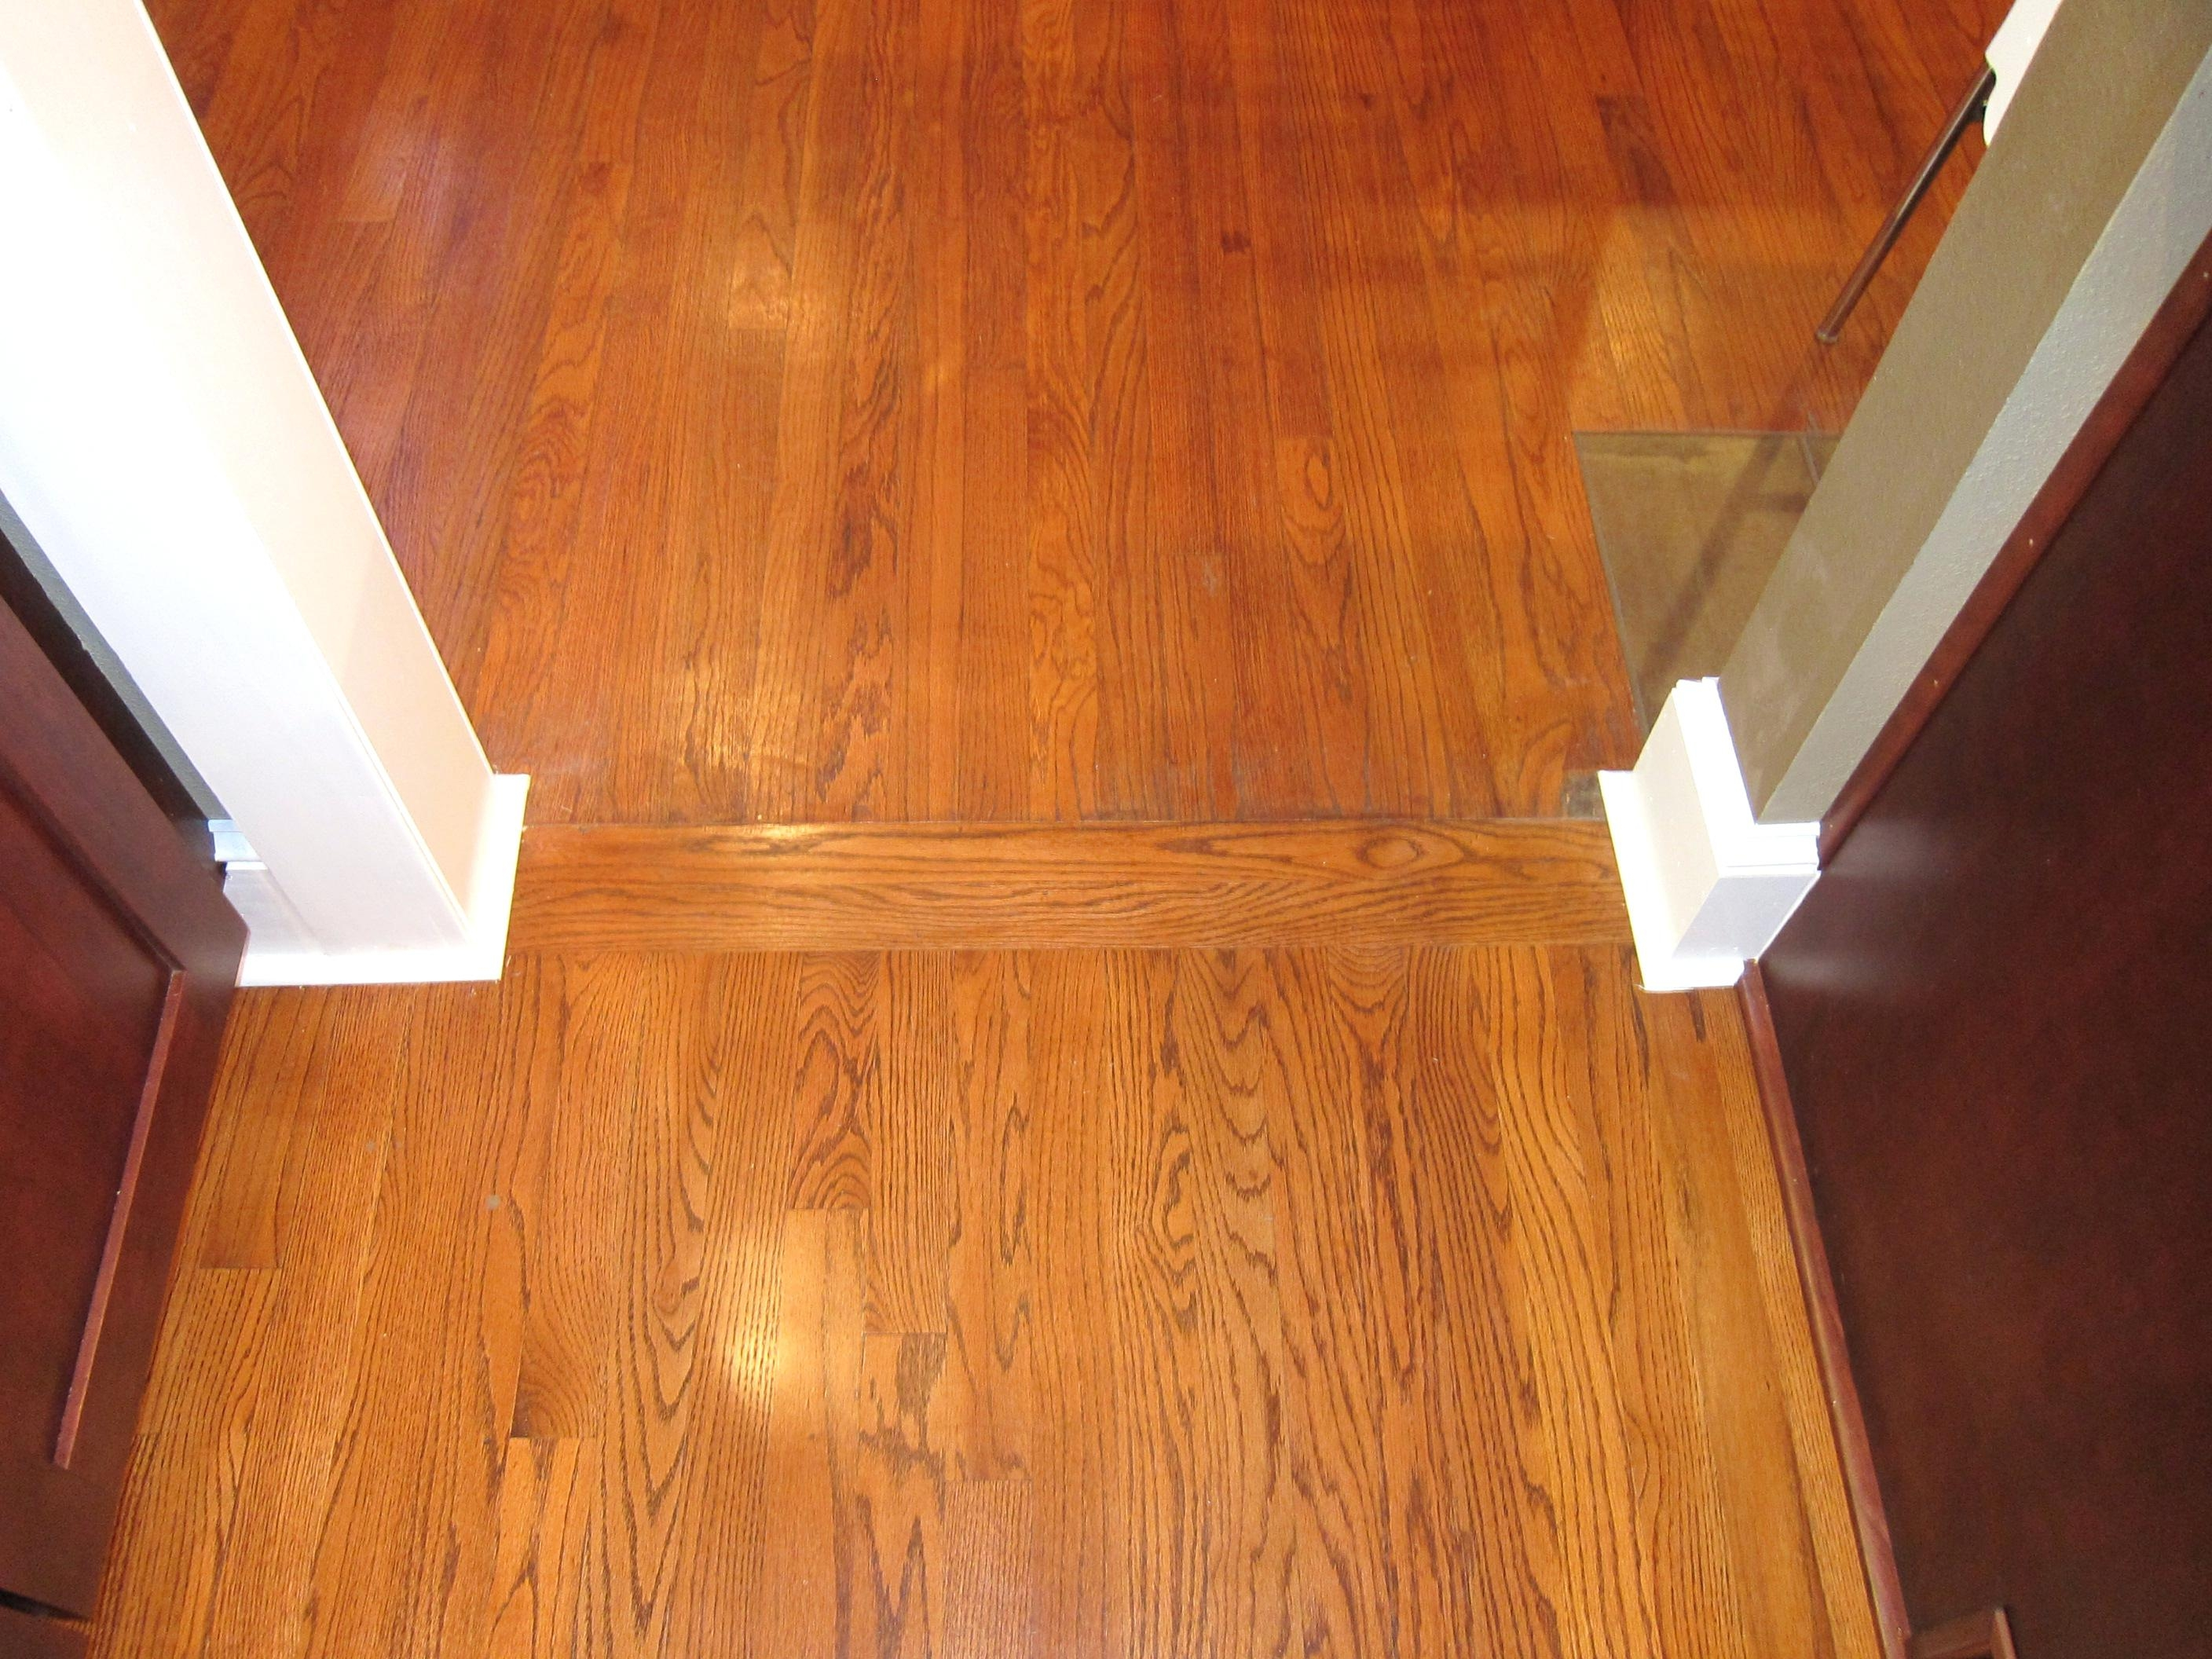 Wood Floor Transitions Between Rooms